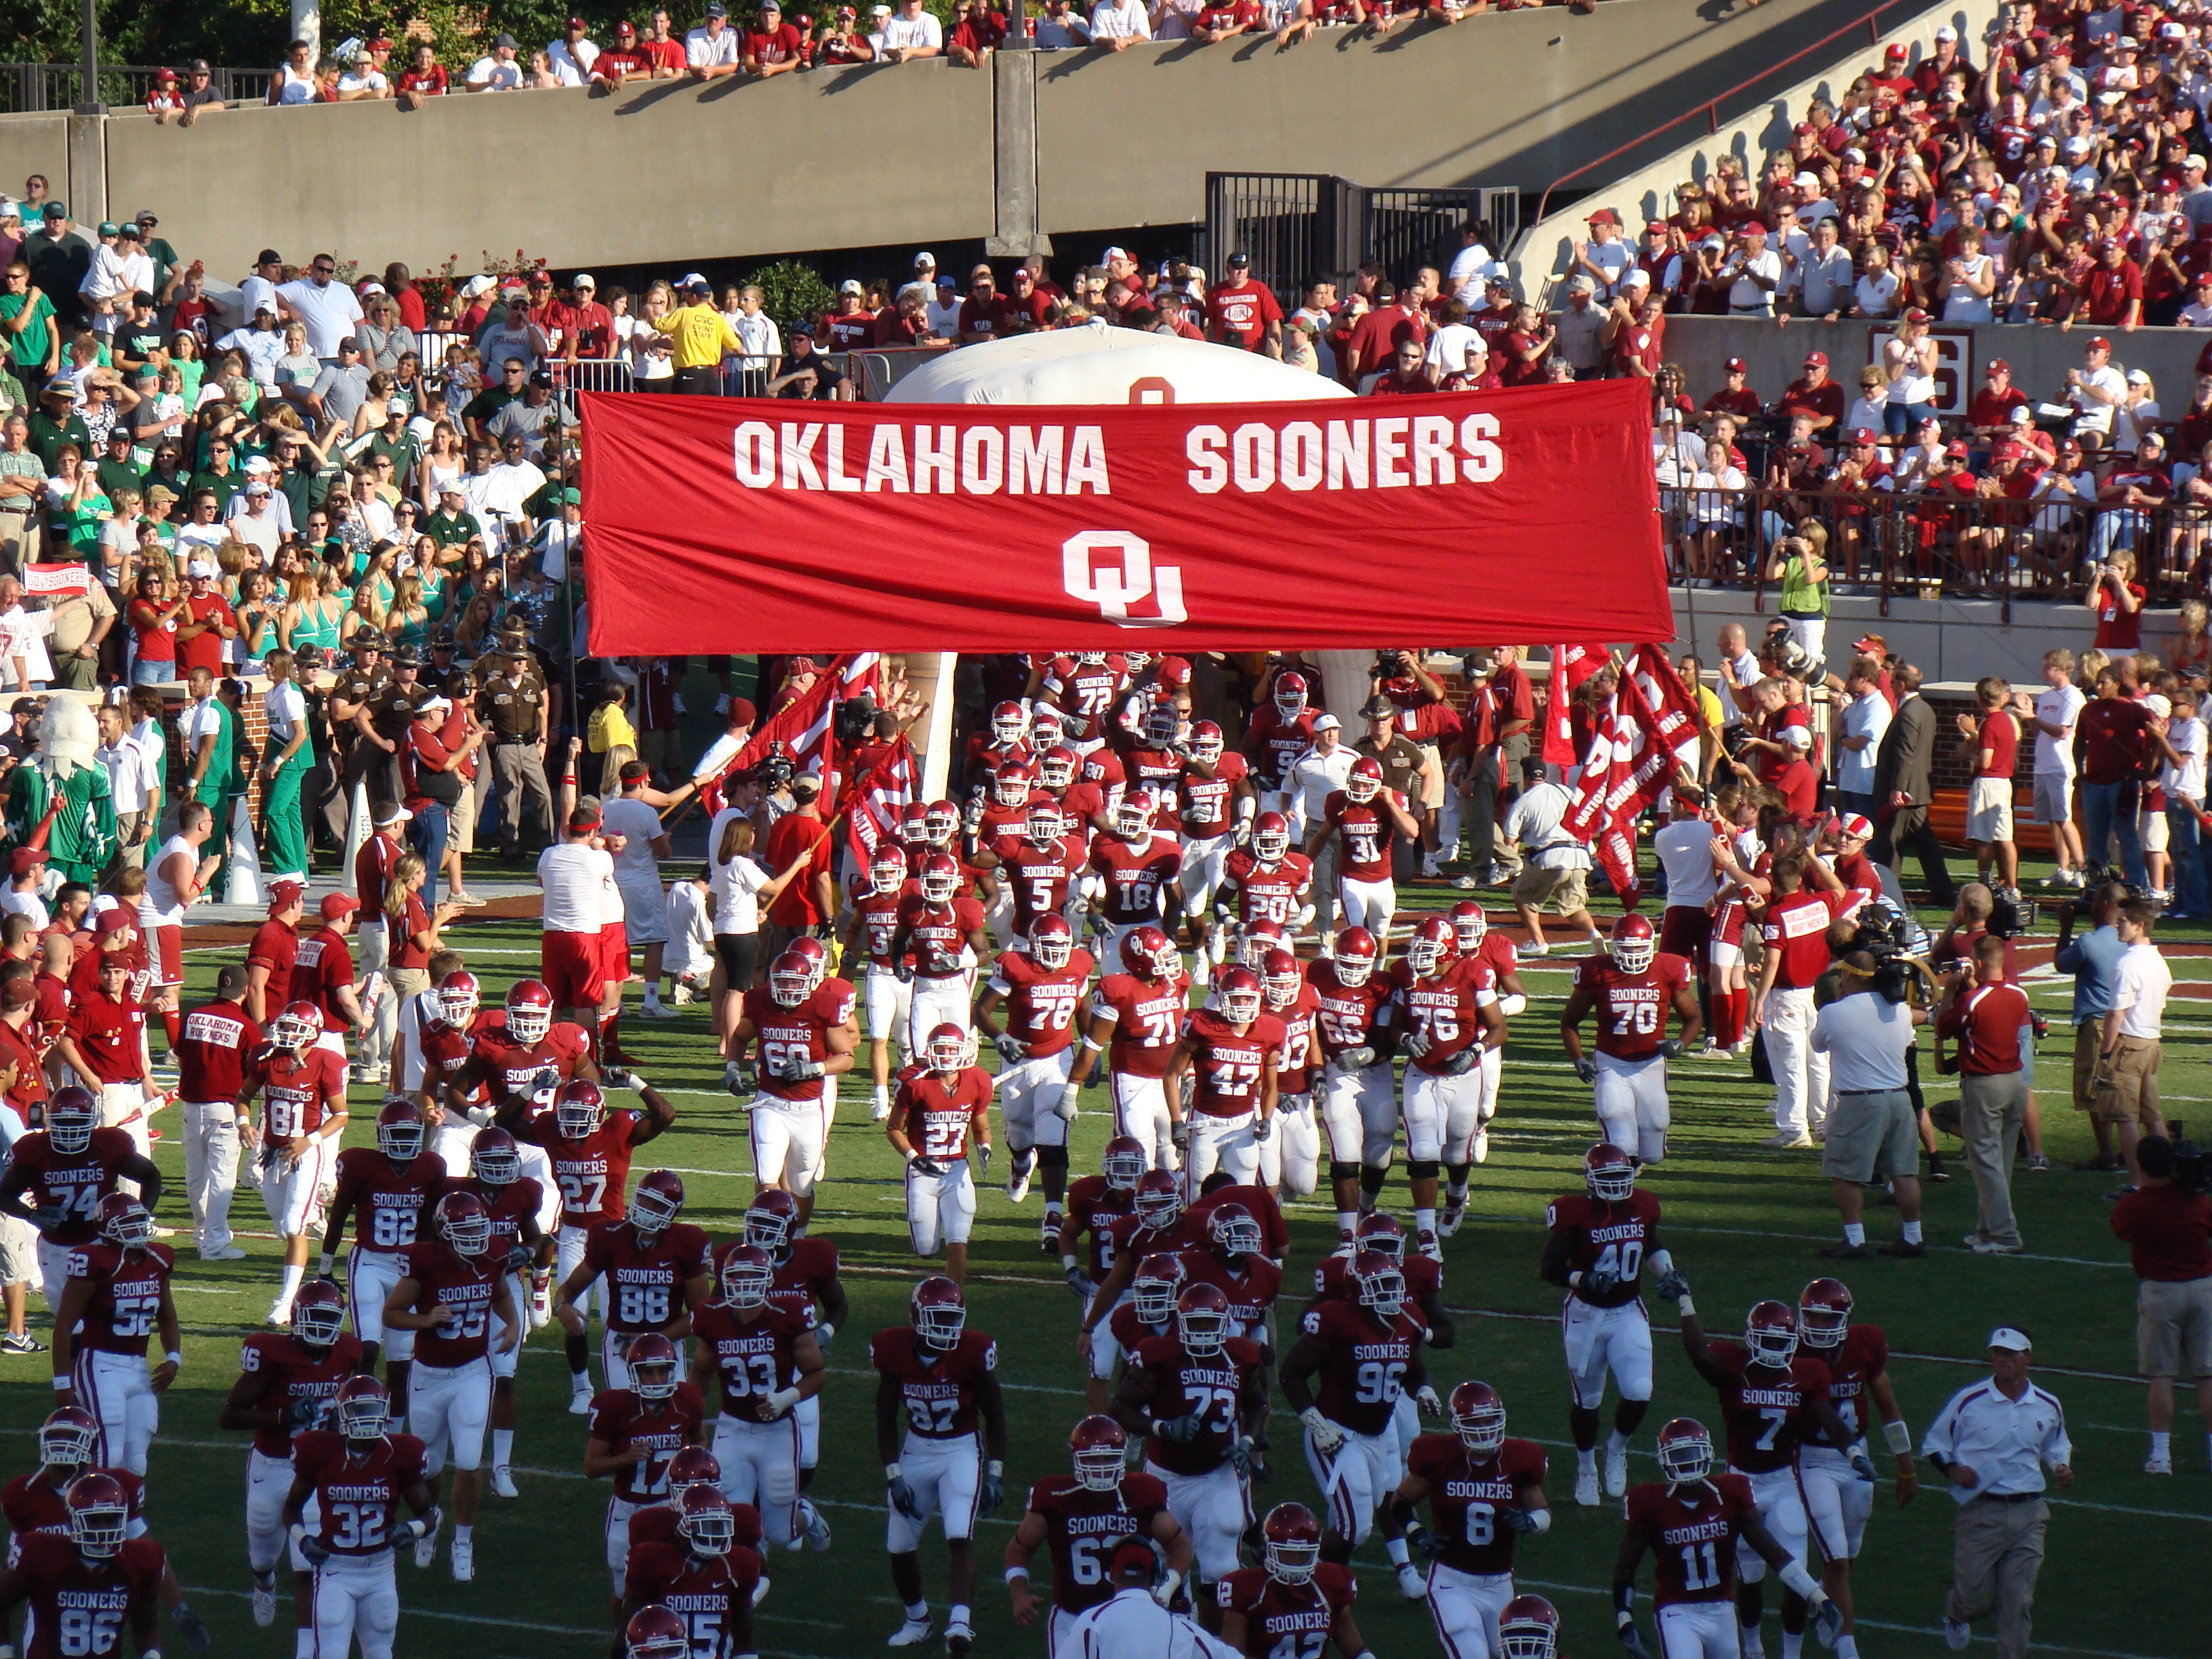 2008 Oklahoma Sooners Football Team Wikipedia